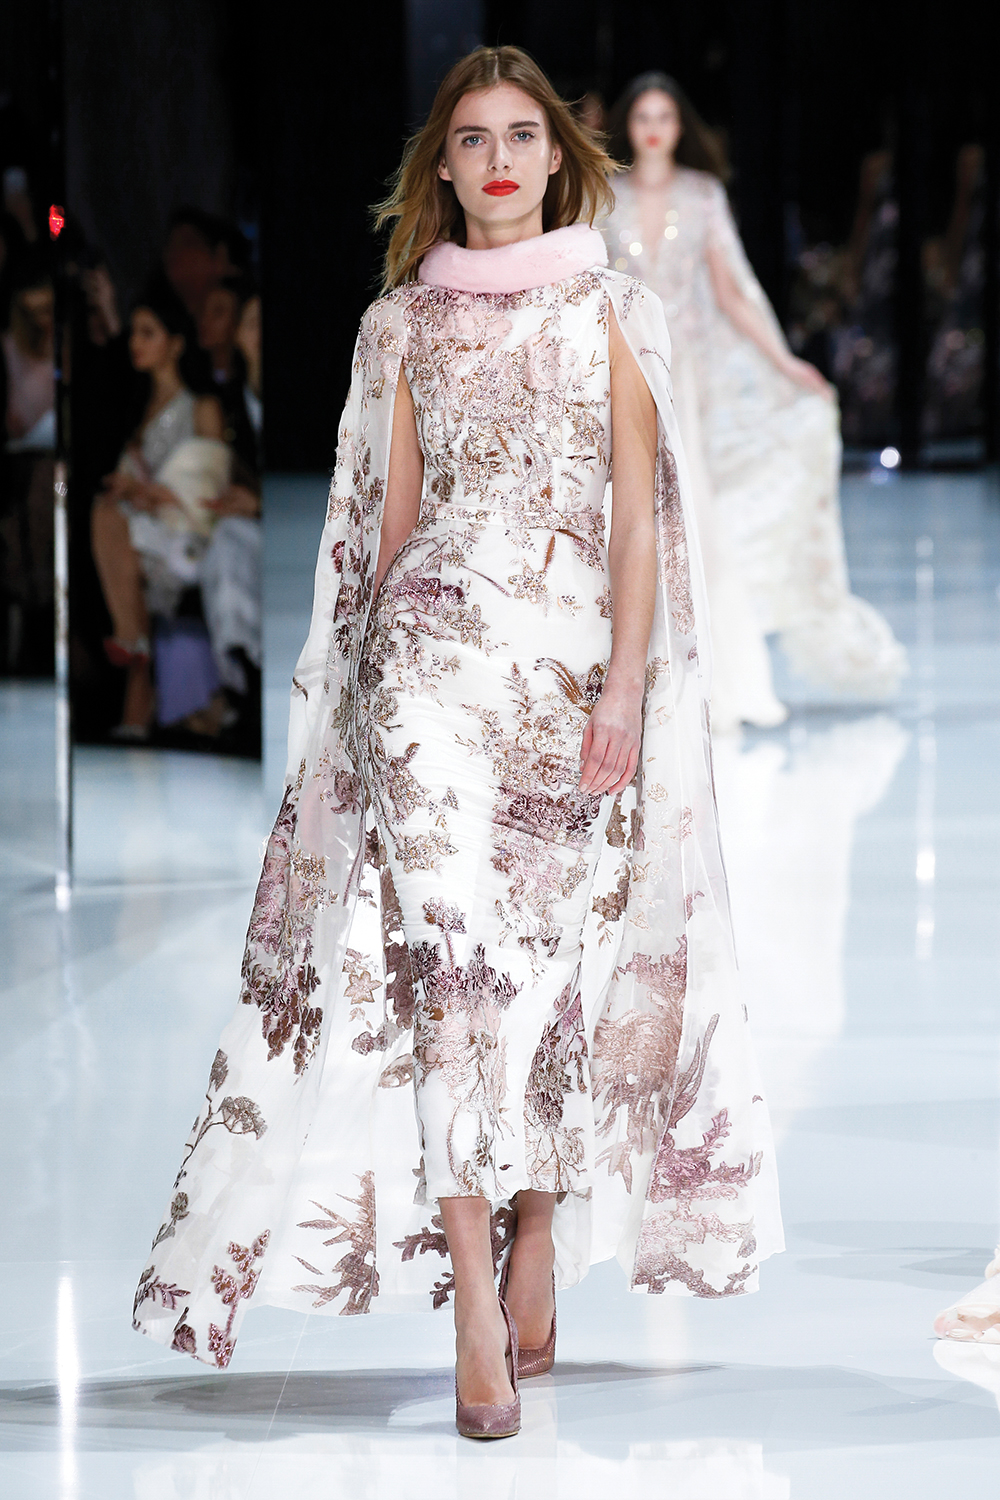 Ralph & Russo Spring/Summer 2018 Couture Show at The Grand Palais in Paris